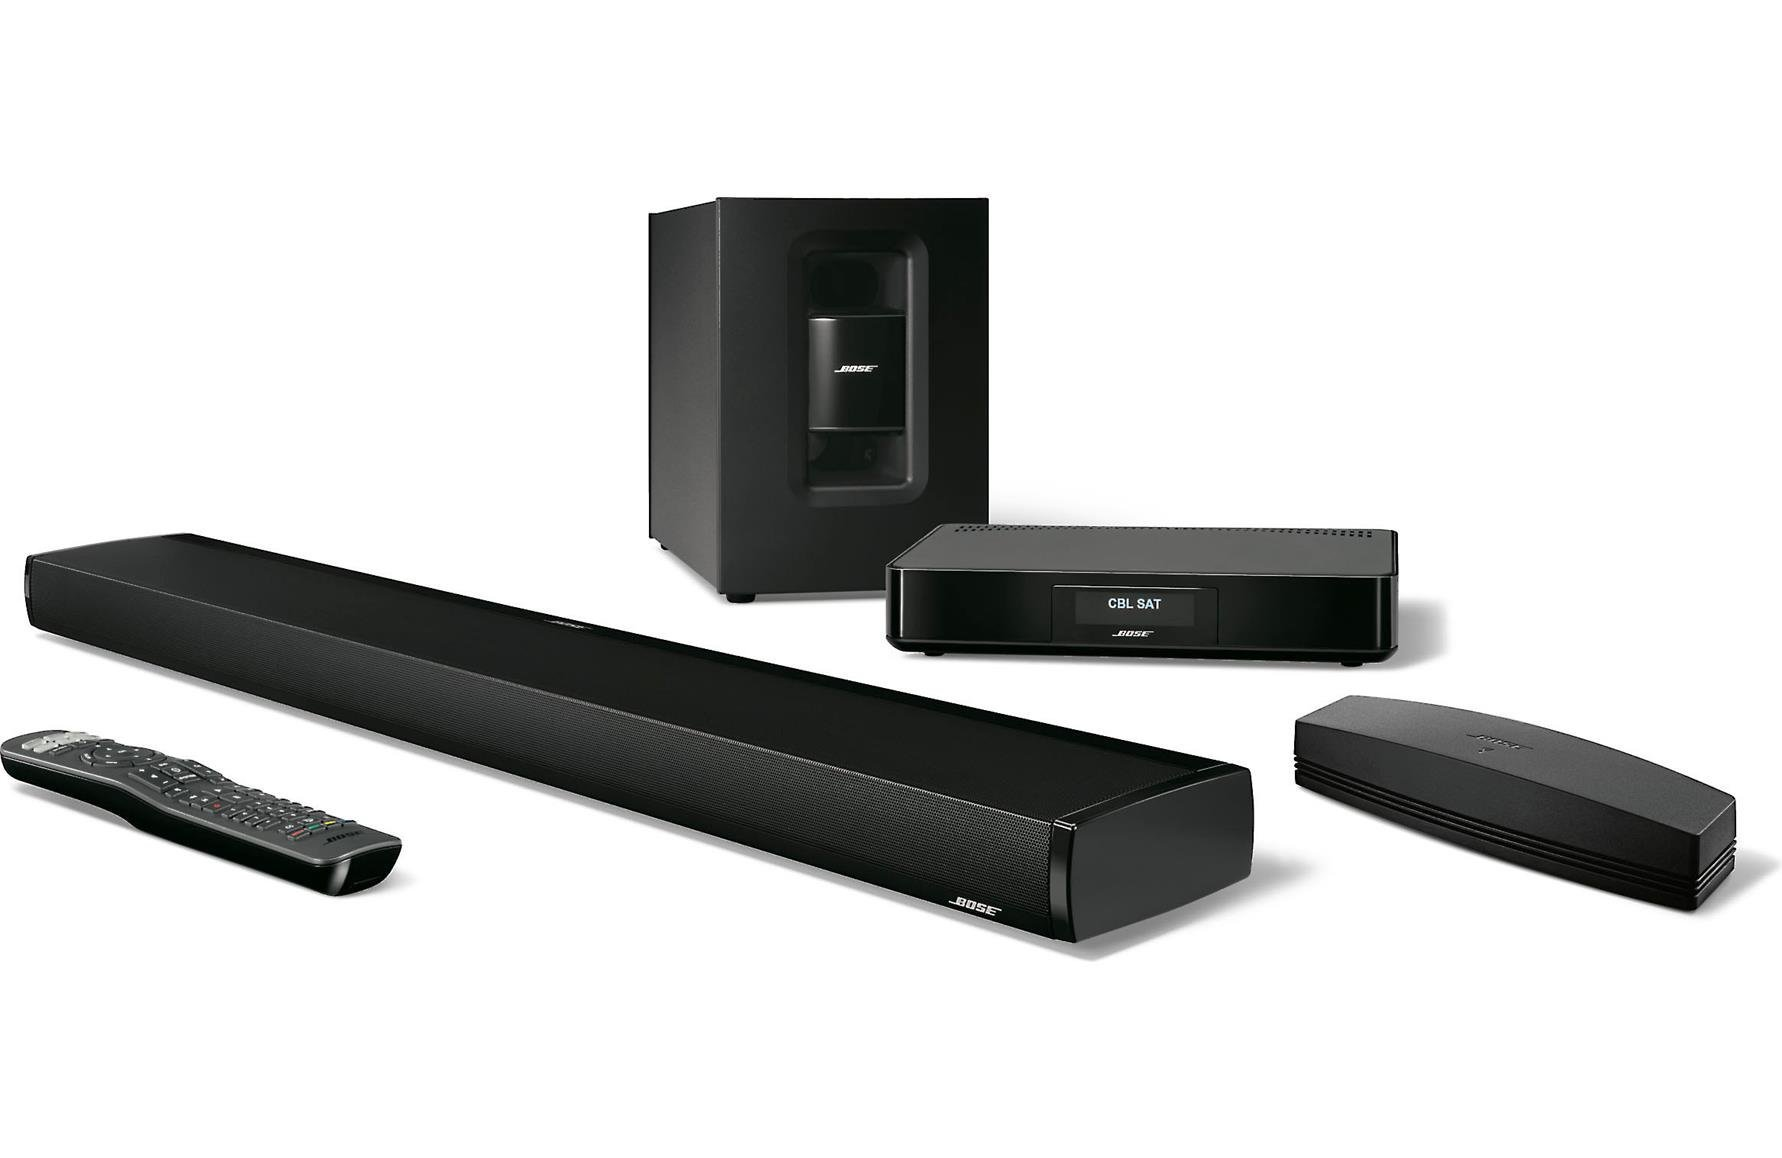 Bose SoundTouch Home Theater System